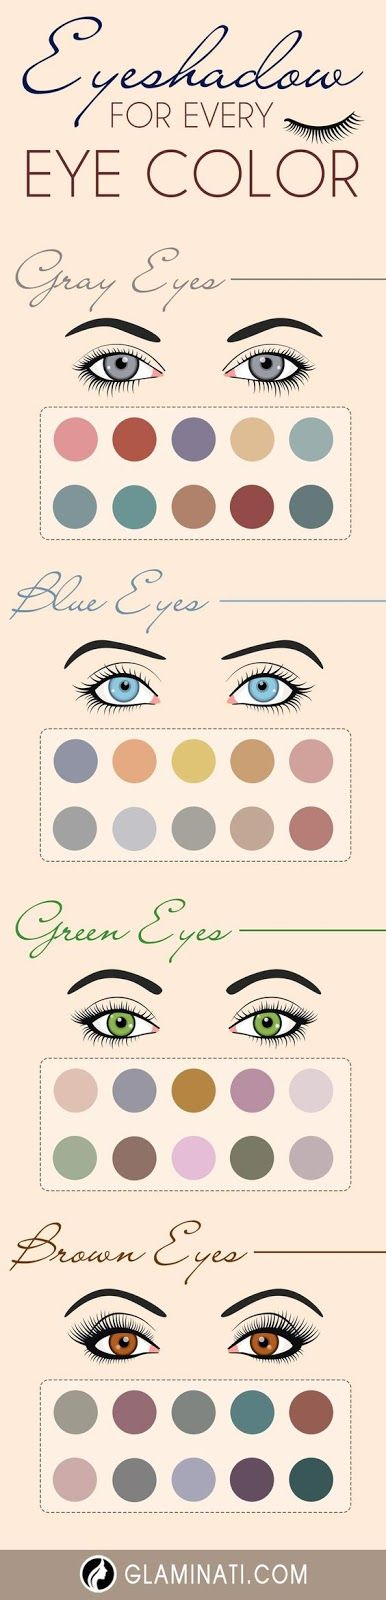 How to Pick the Best Makeup for Gray Eyes?